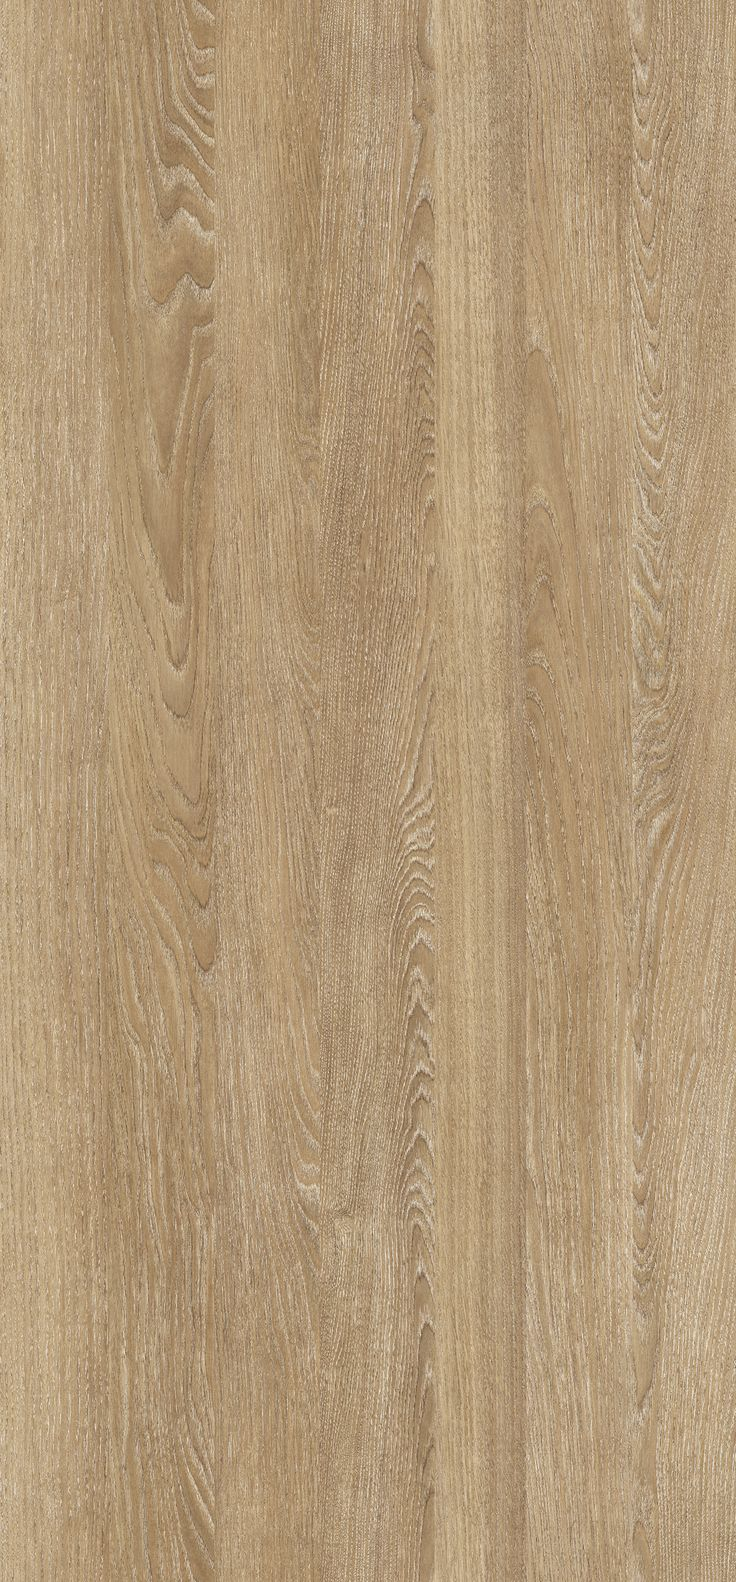 Best 25 Oak Wood Texture Ideas On Pinterest Wood Floor